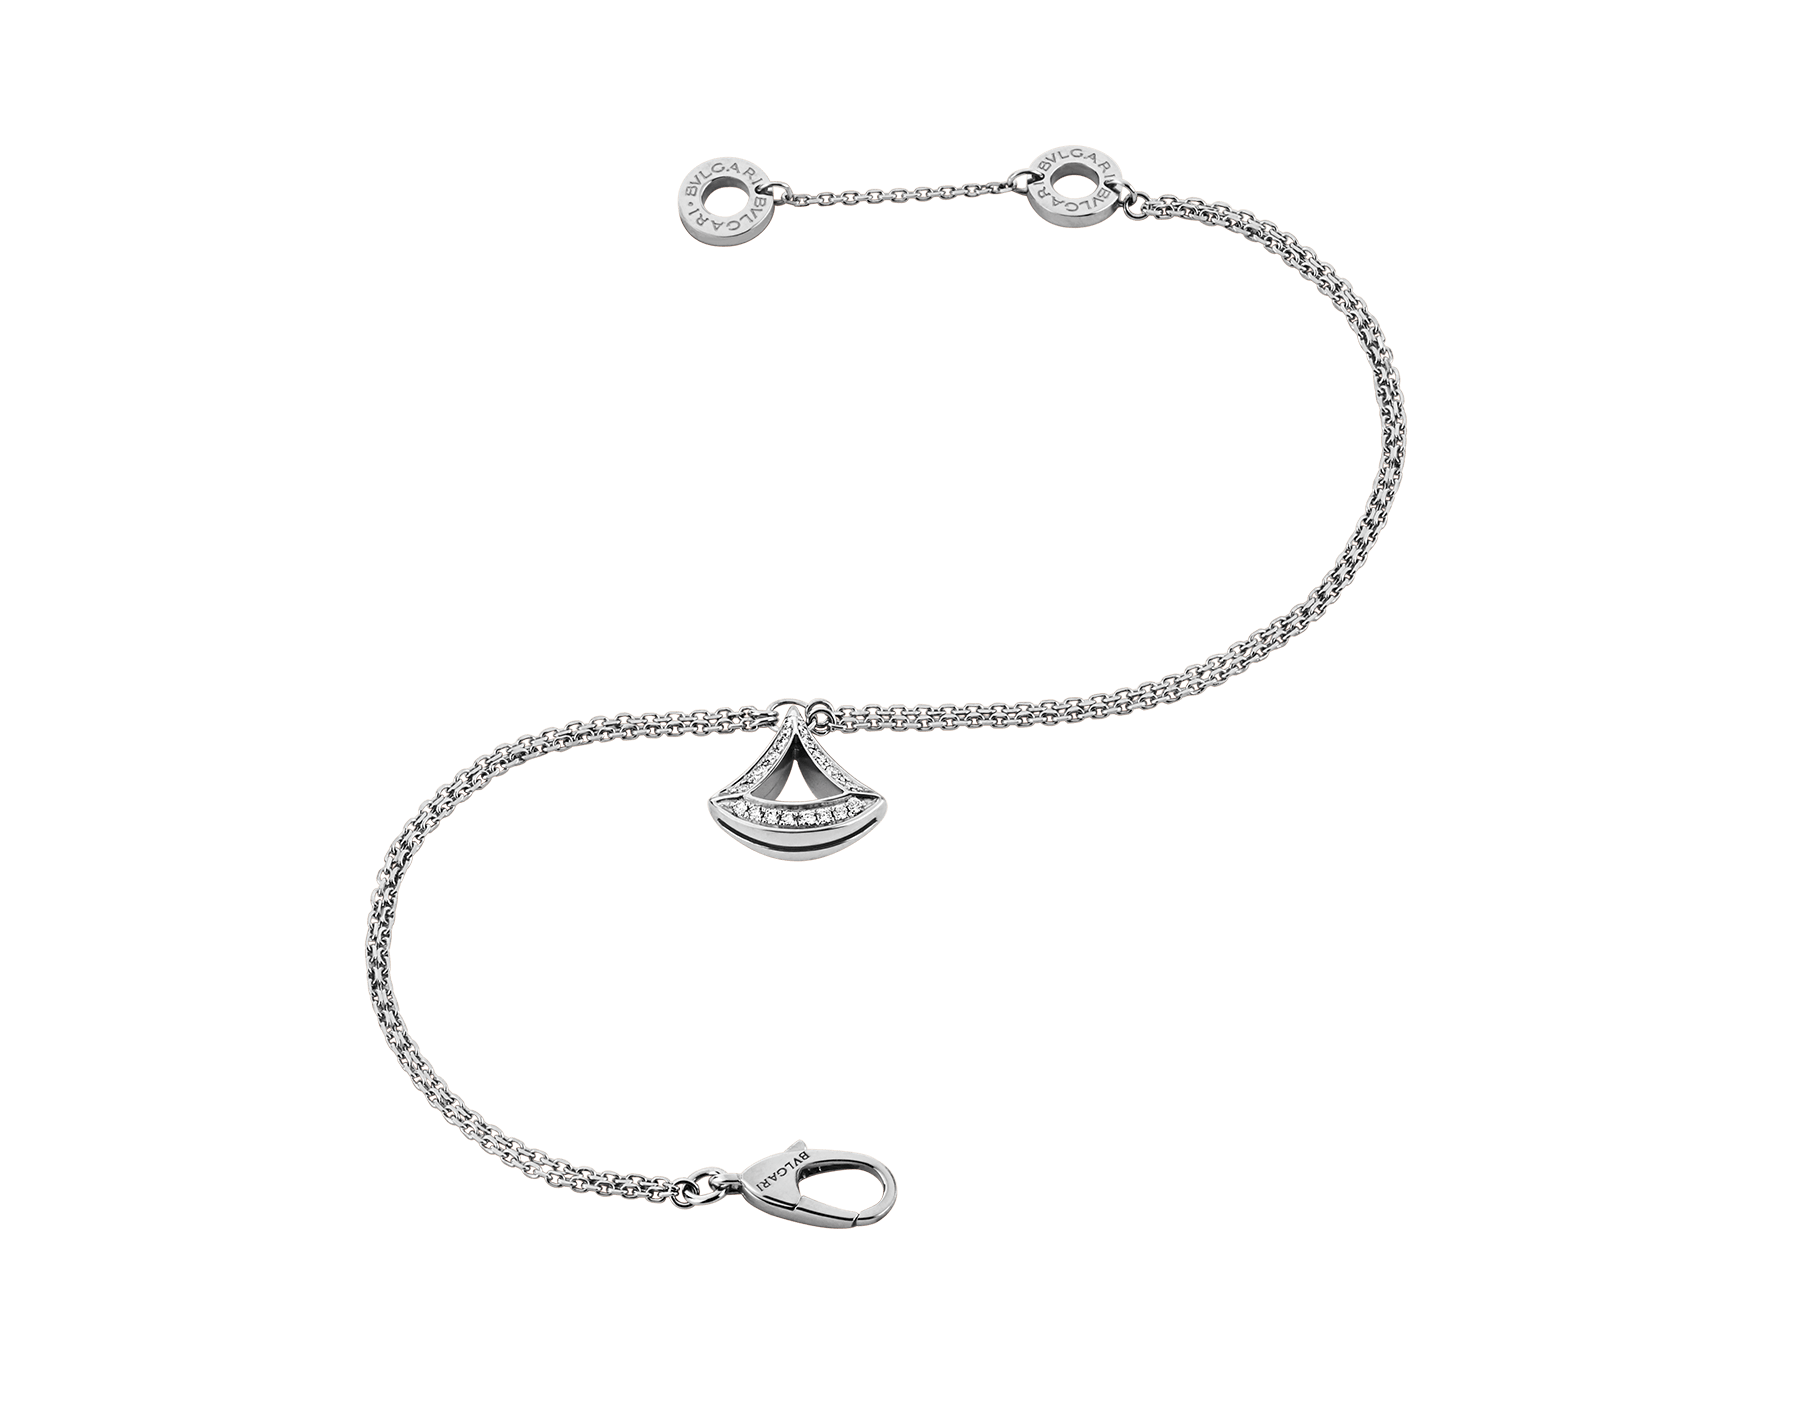 DIVAS' DREAM openwork bracelet in 18 kt white gold with 18 kt white gold pendant set with pavé diamonds (0.20 ct). BR858077 image 2